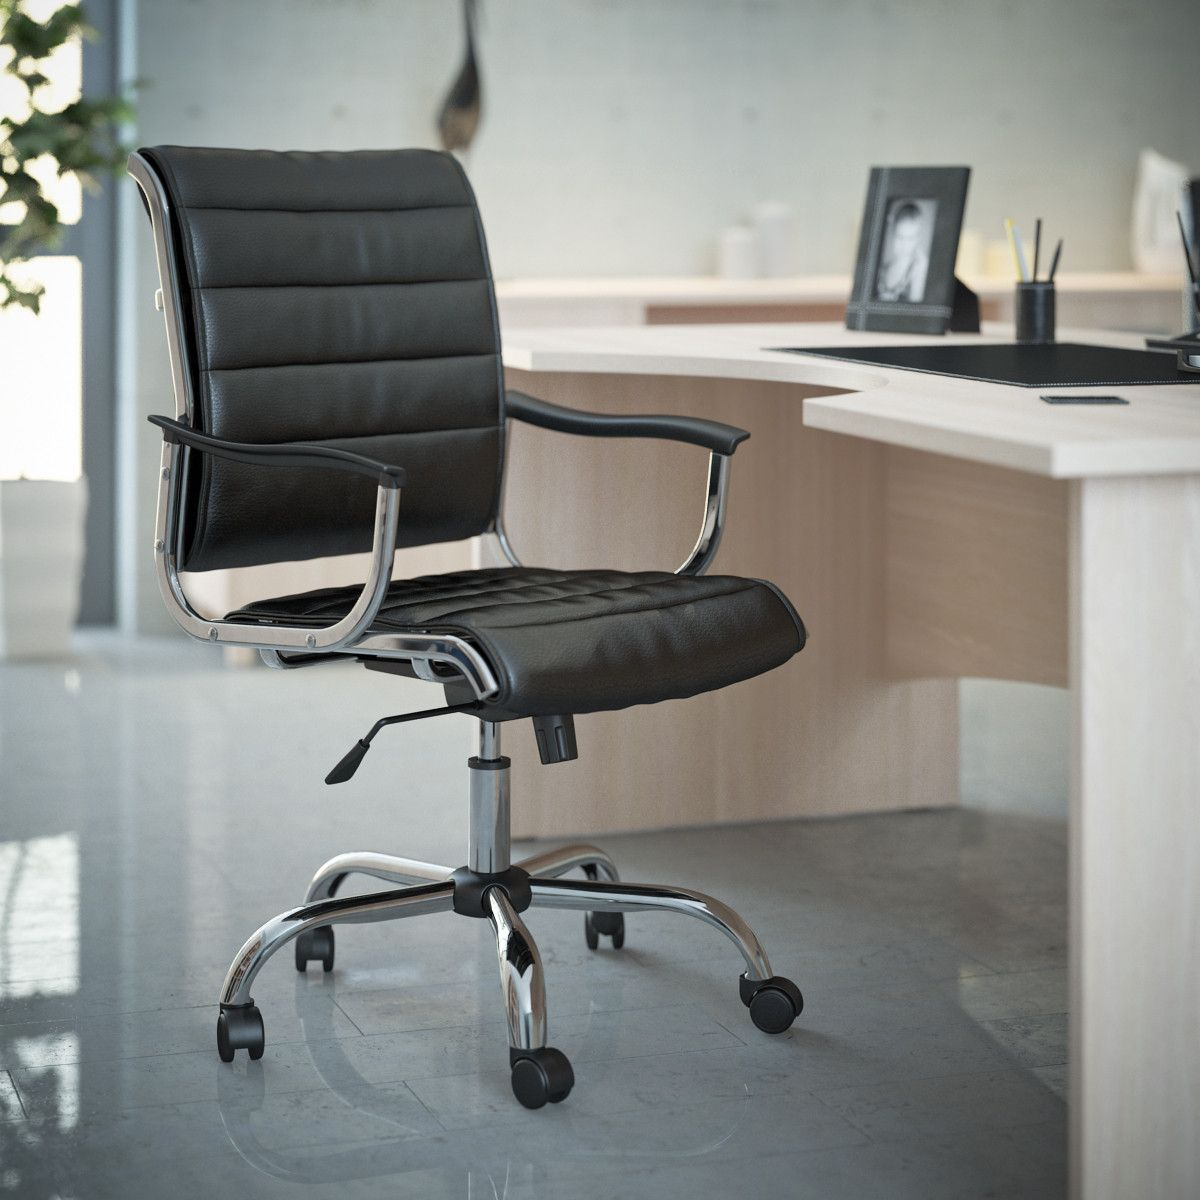 Office Chairs Office Max Office Chair 994axns 3d Model 3ds Max Vray Makula 39s 3d